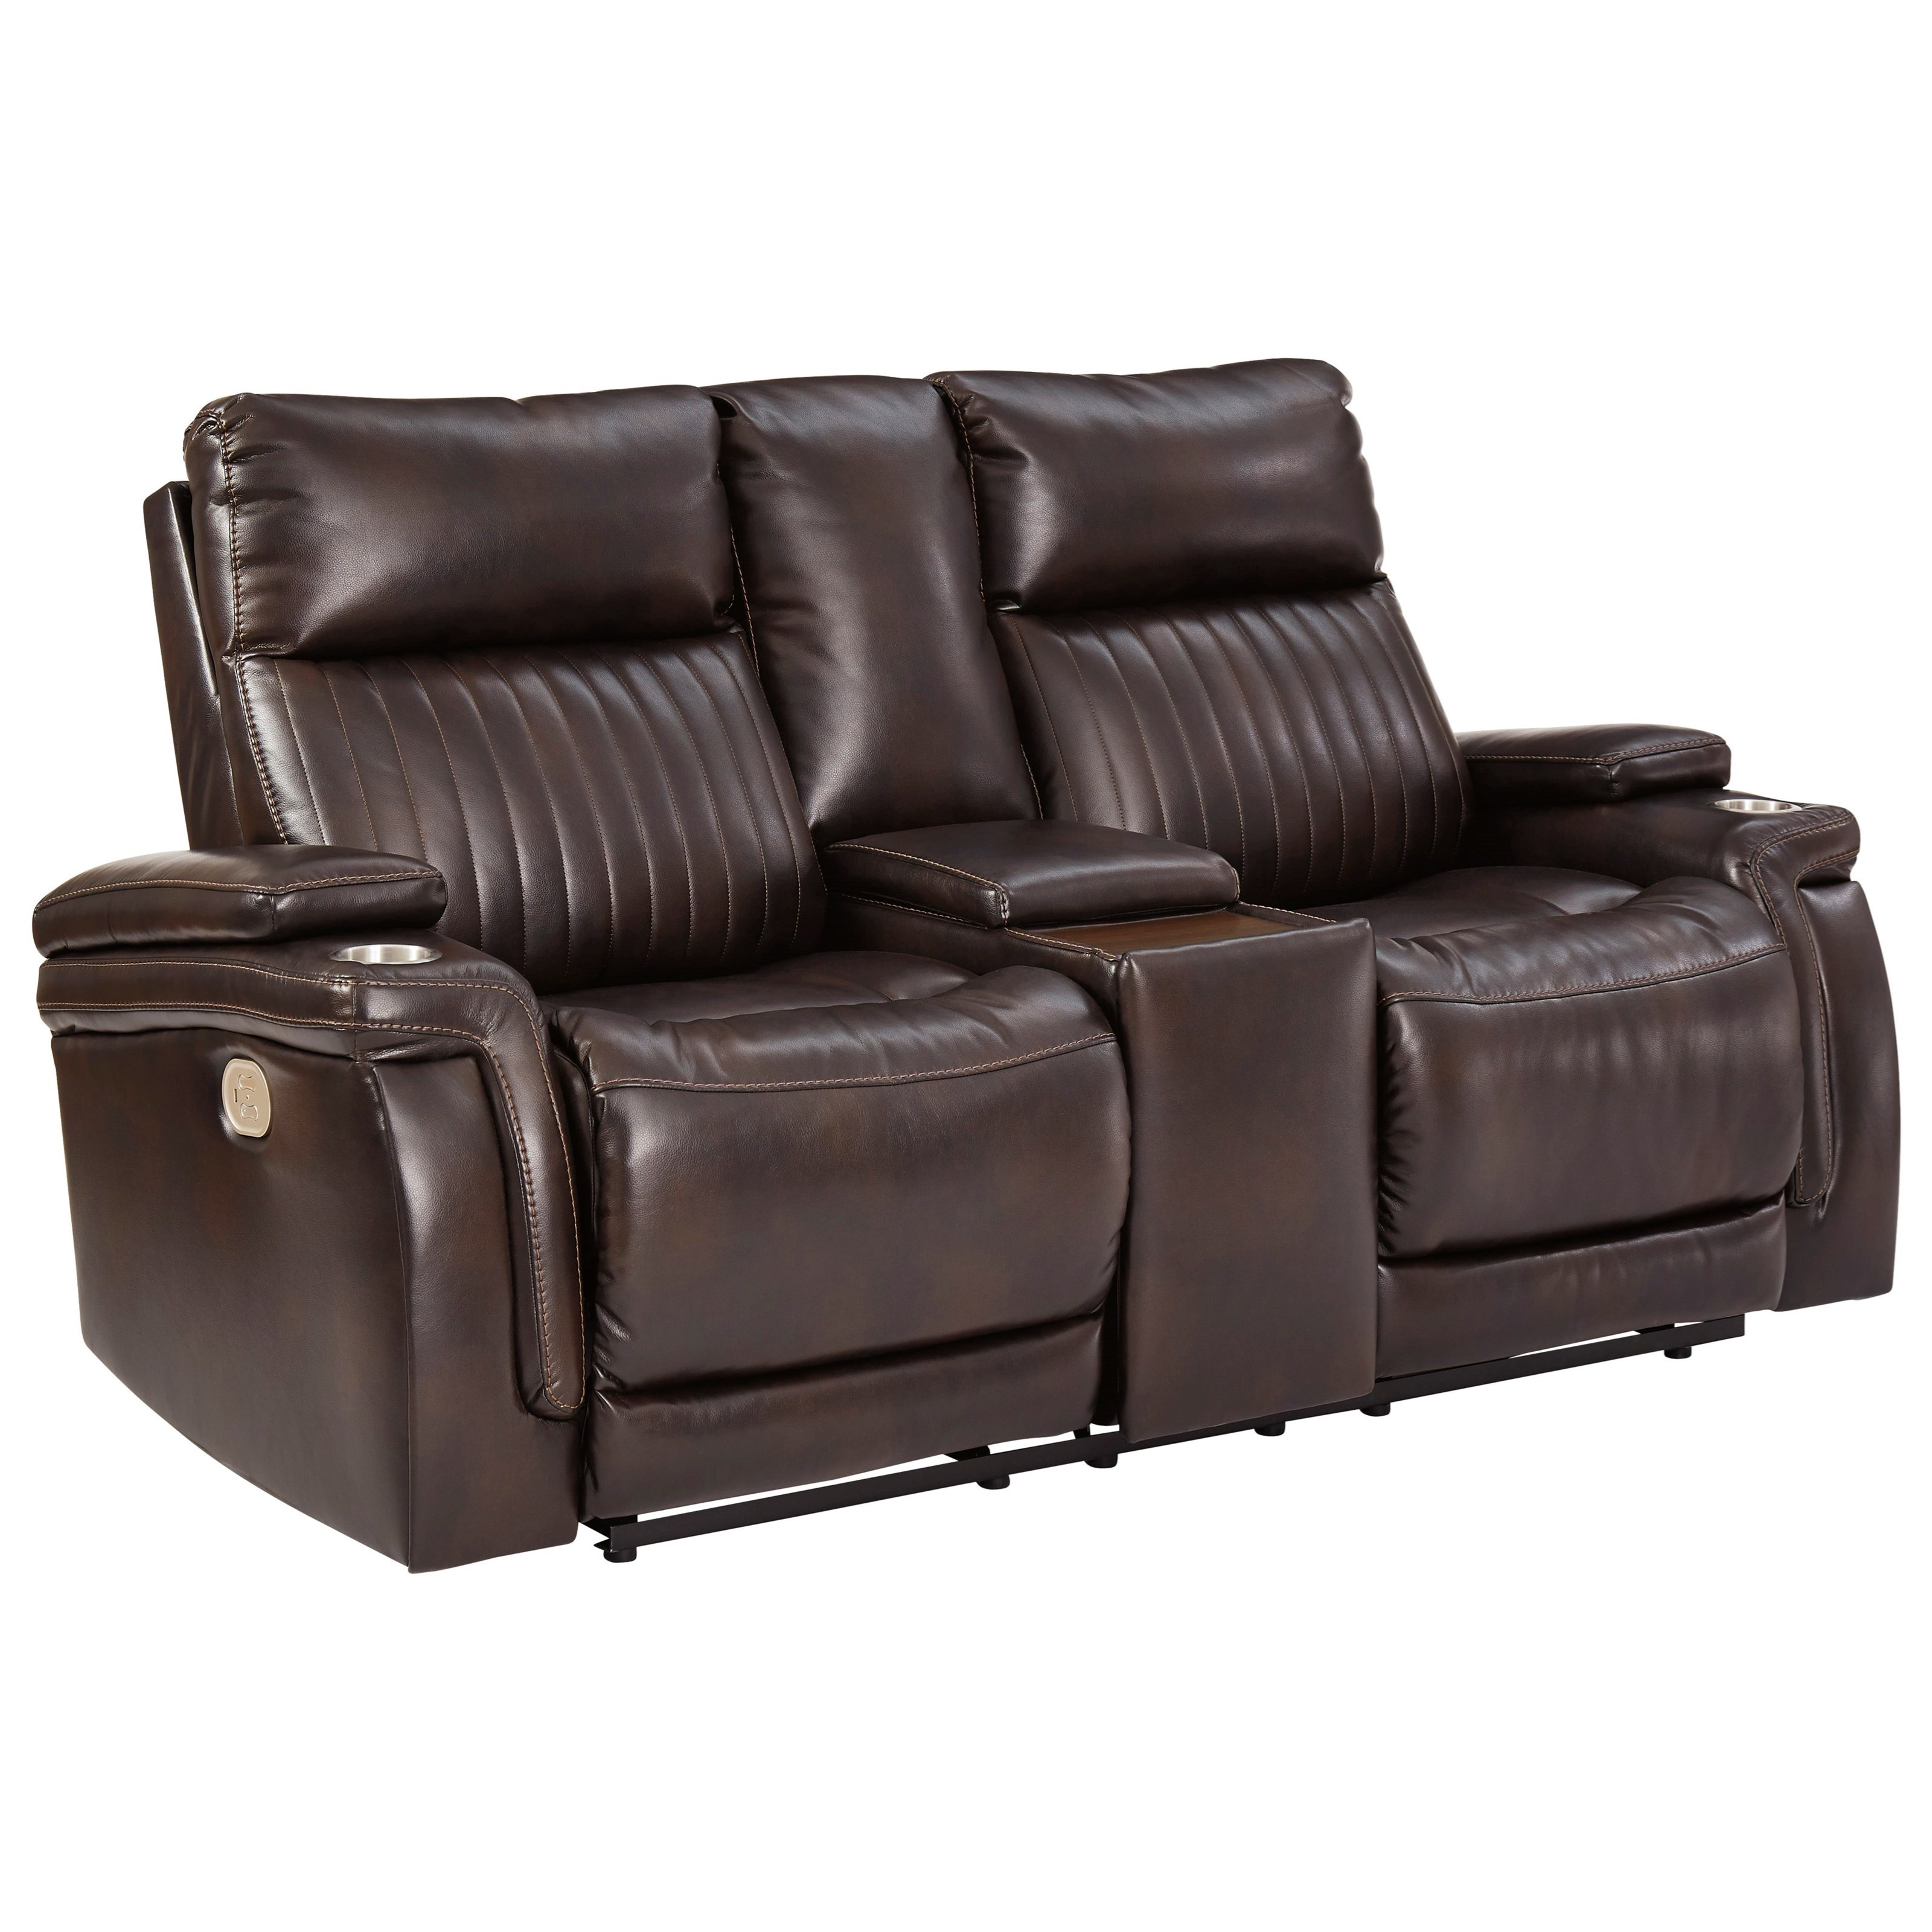 Team Time Power Reclining Console Loveseat by Signature Design by Ashley at Value City Furniture